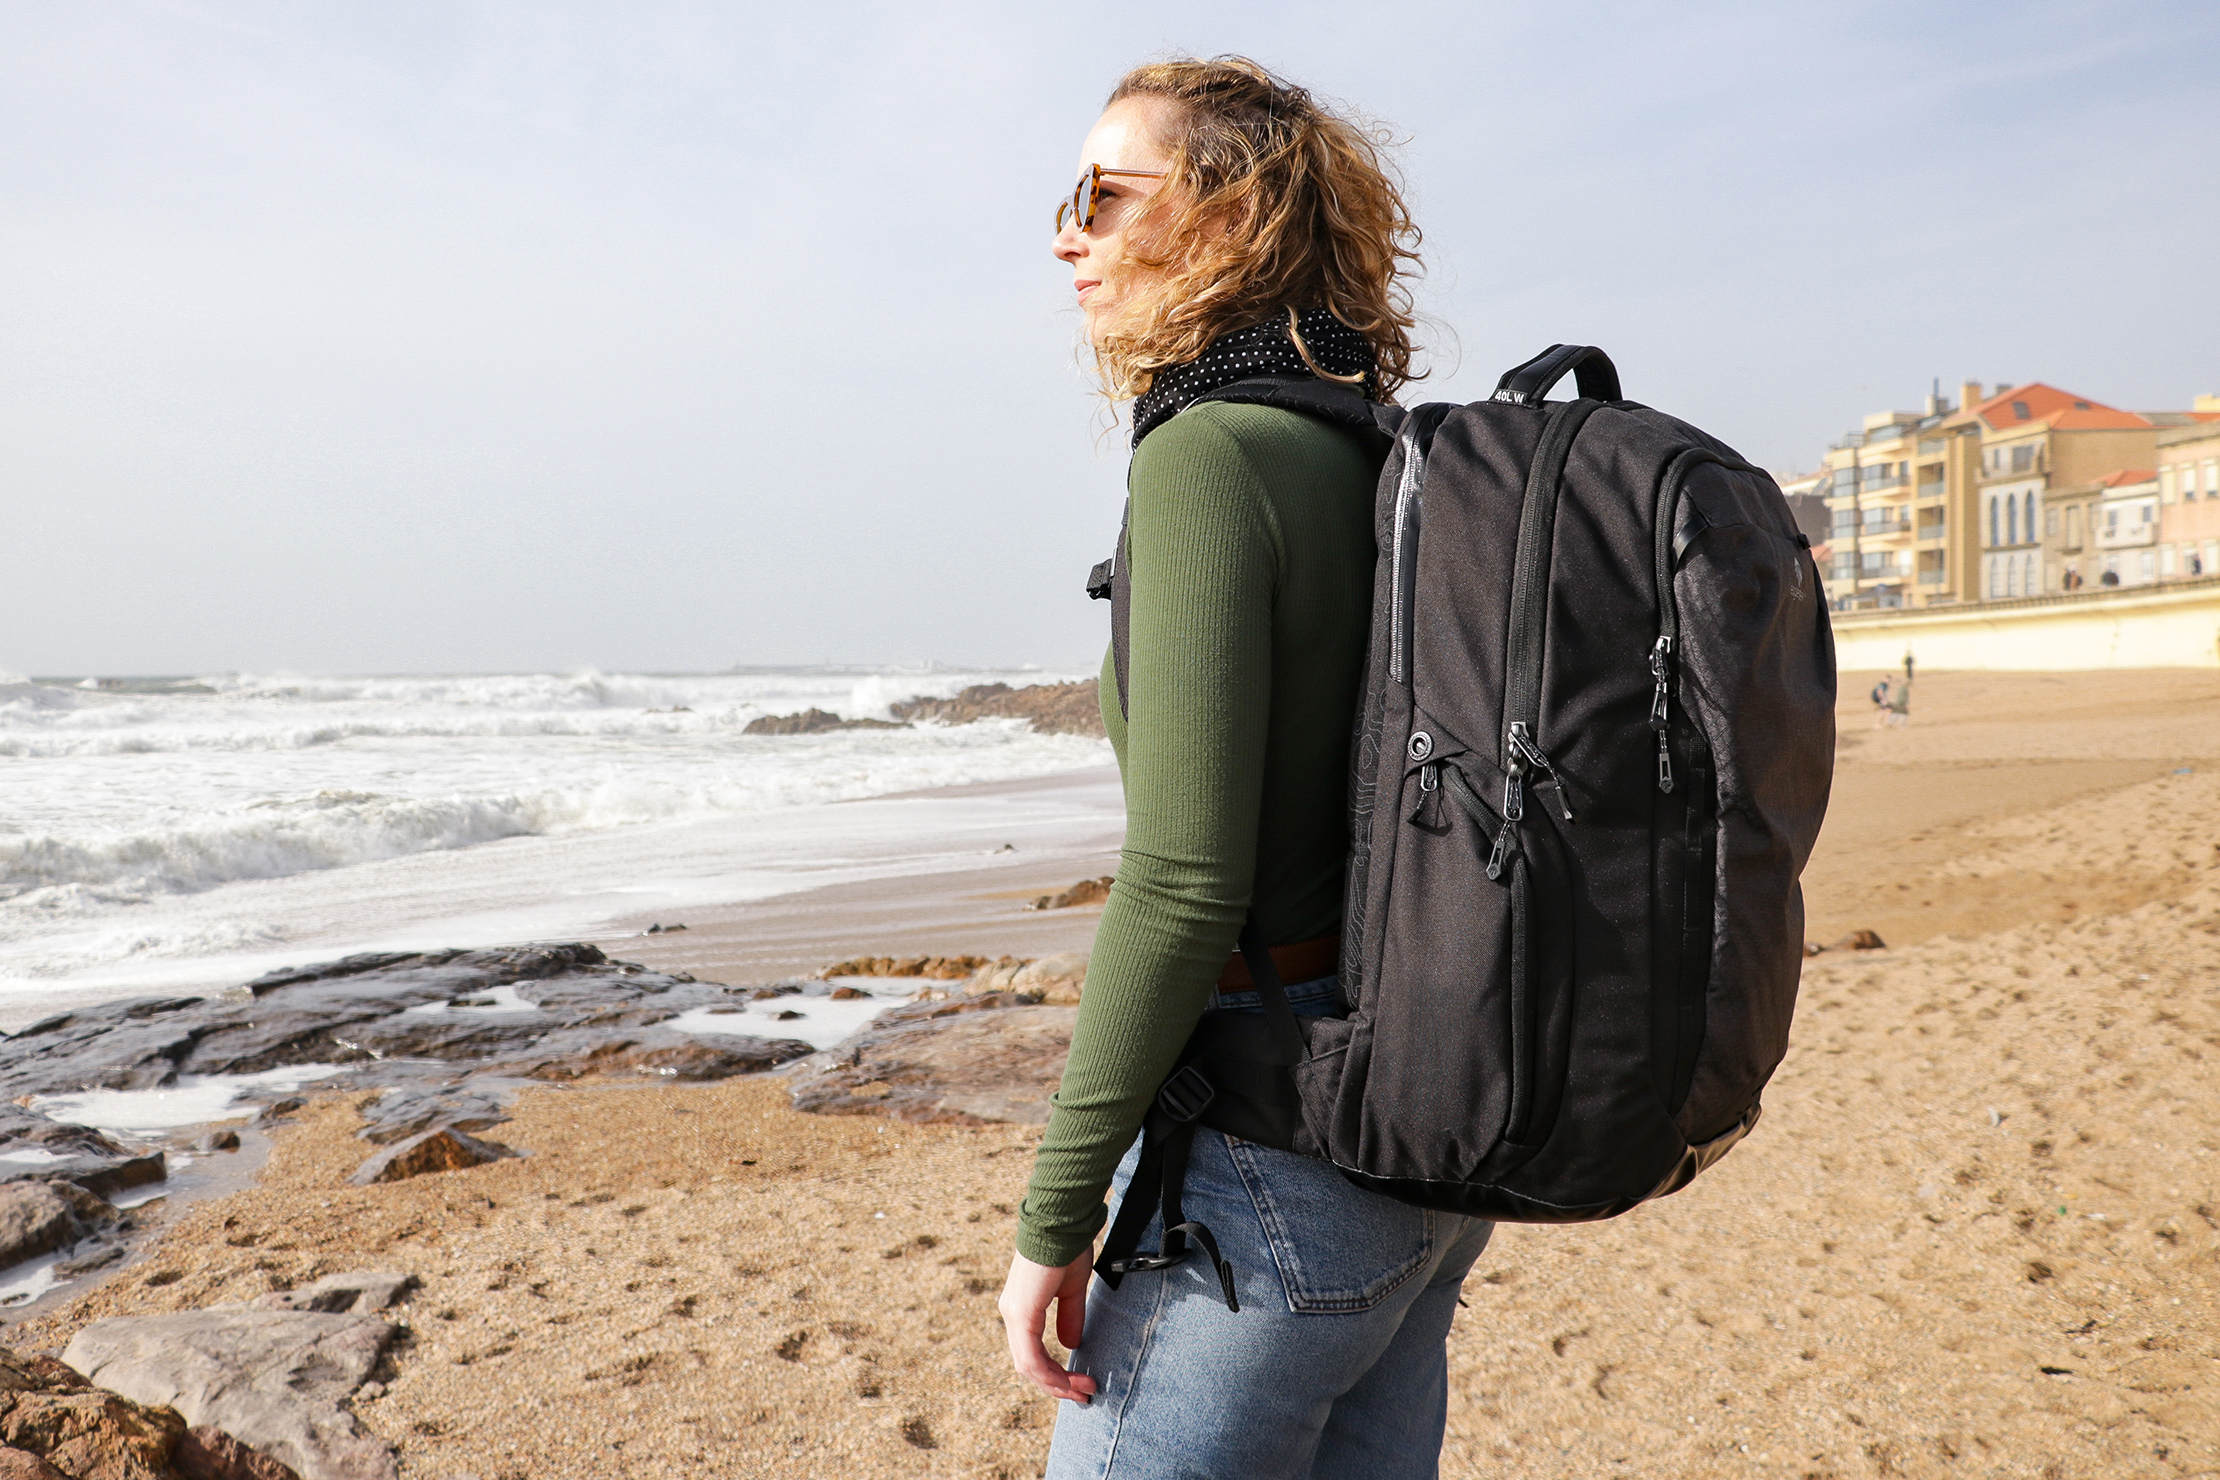 Eagle Creek Wayfinder Backpack 40L In Porto, Portugal